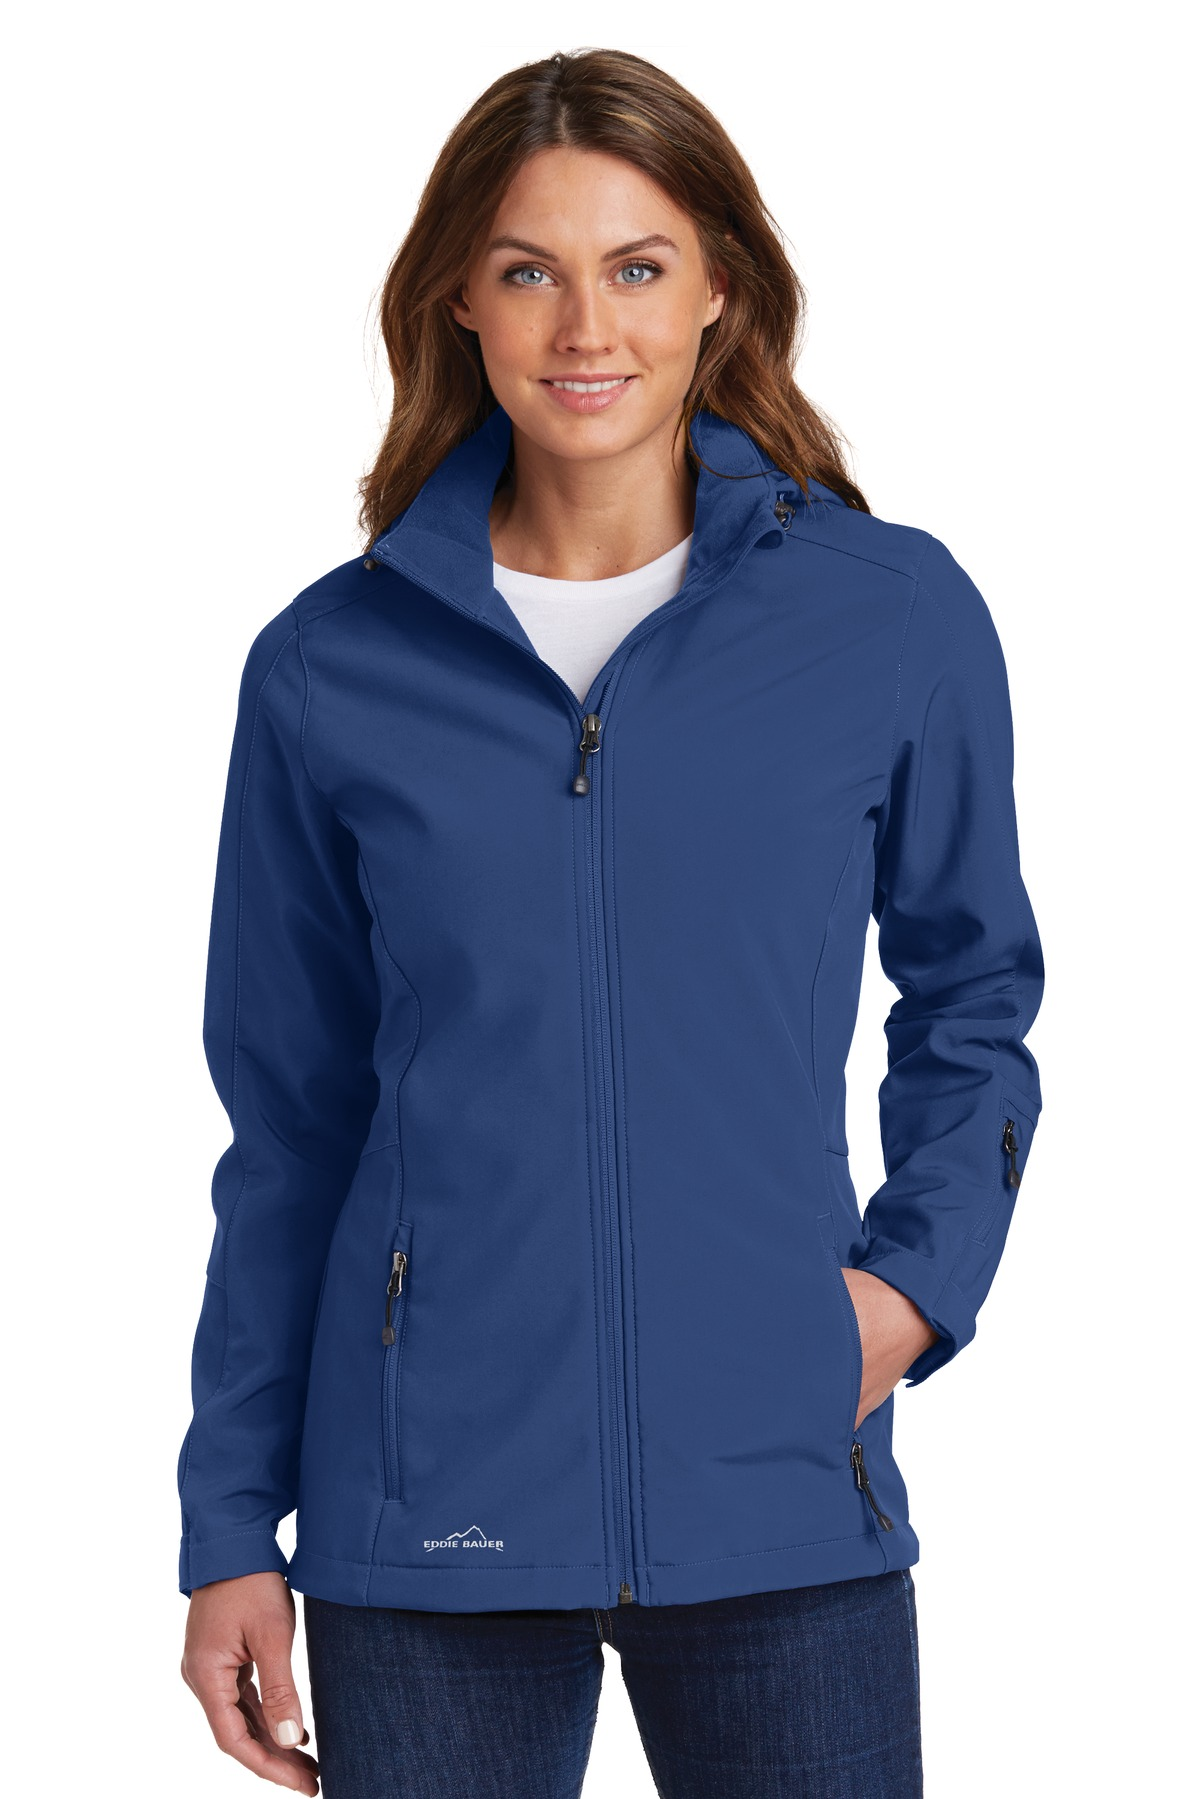 Eddie Bauer ®  Ladies Hooded Soft Shell Parka. EB537 - Admiral Blue